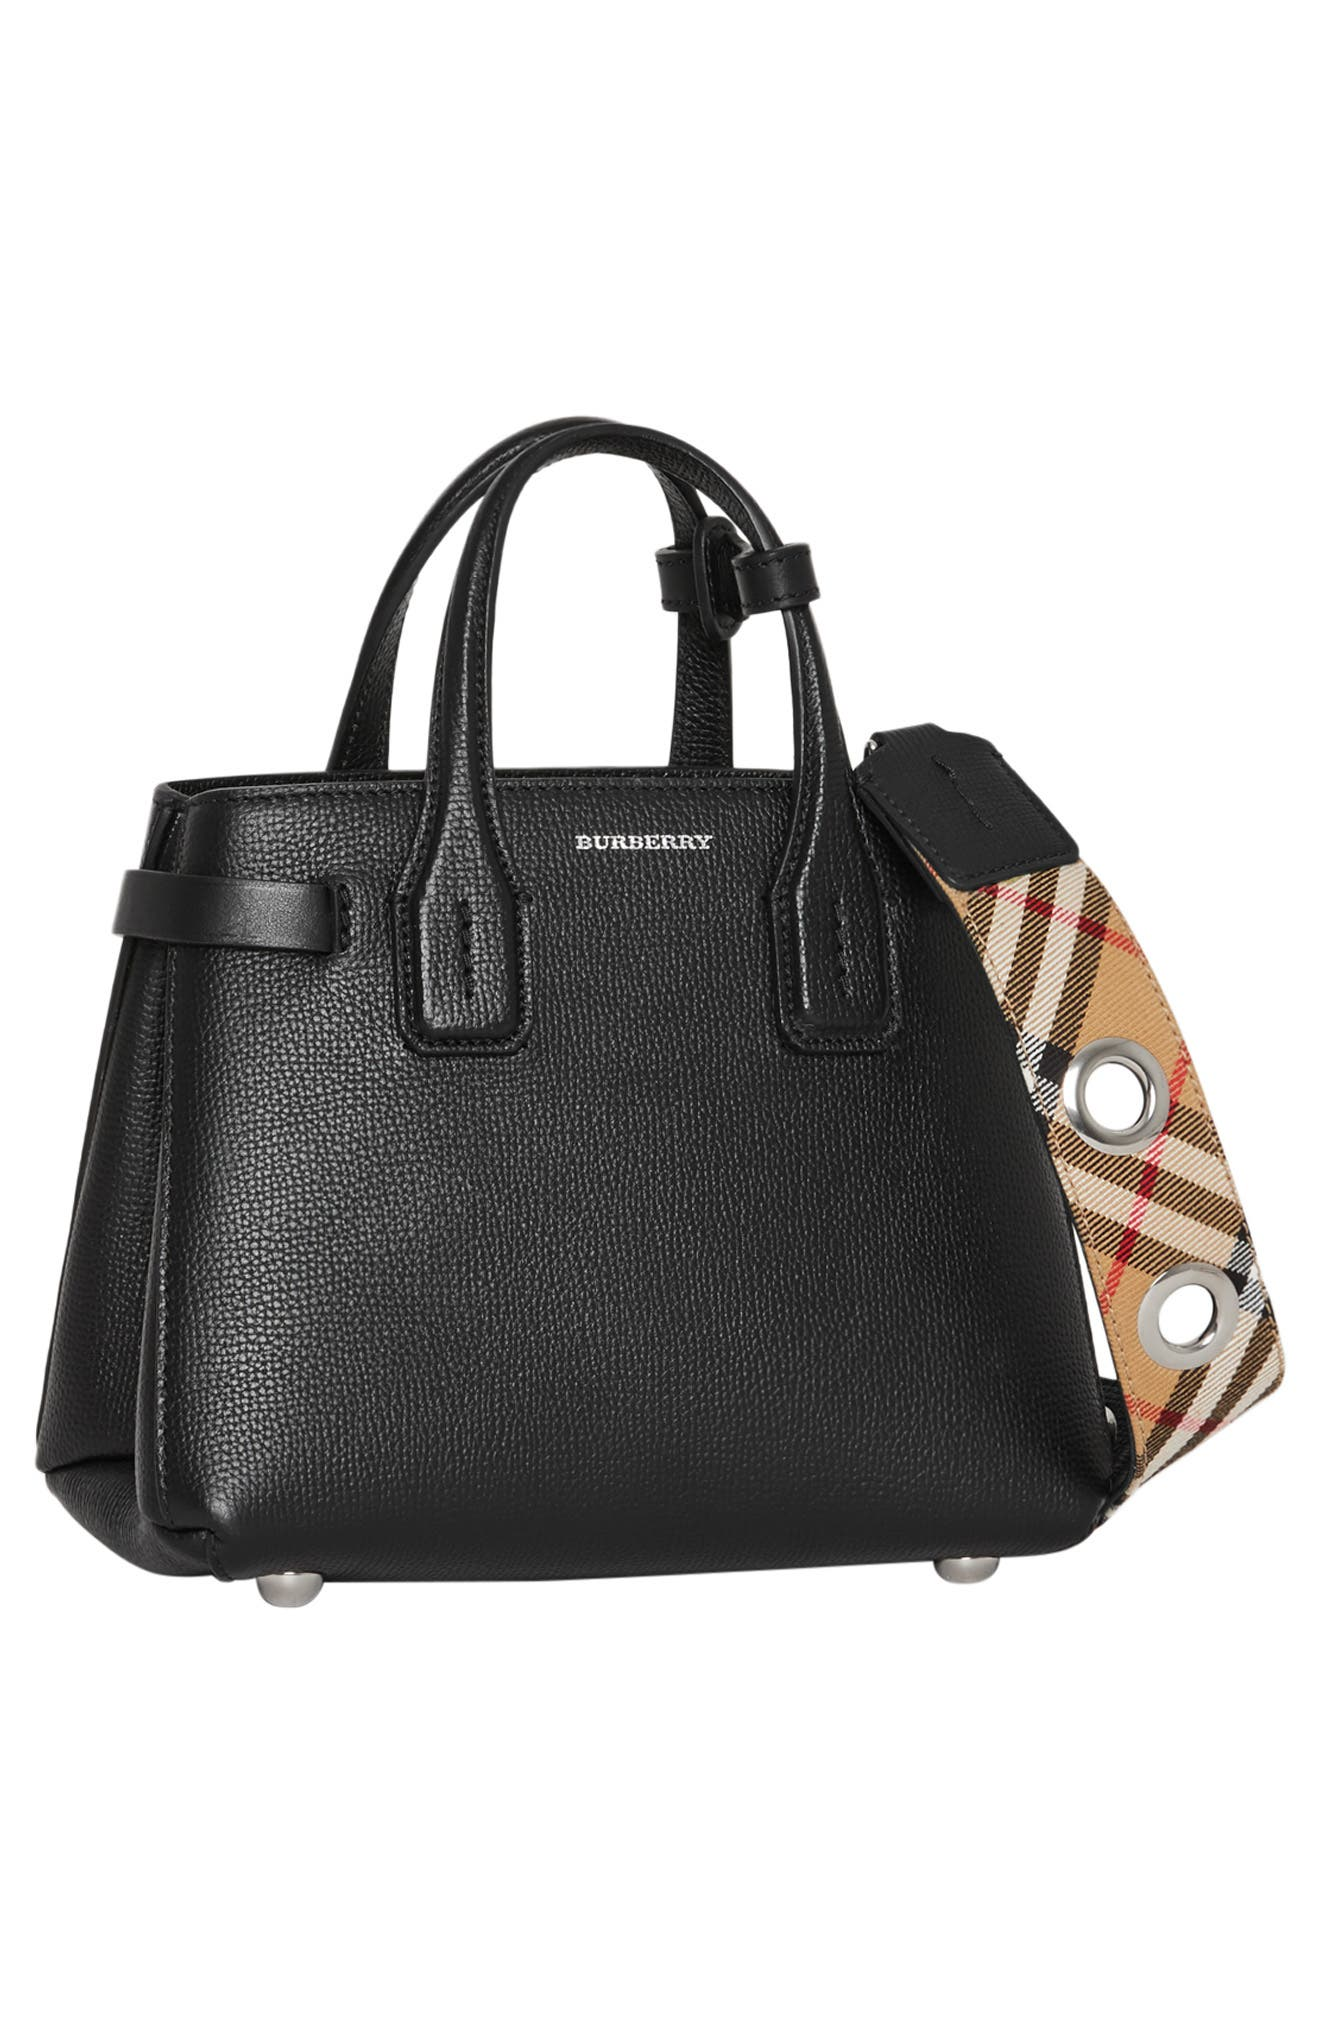 BURBERRY,                             Baby Banner Leather Satchel,                             Alternate thumbnail 11, color,                             BLACK